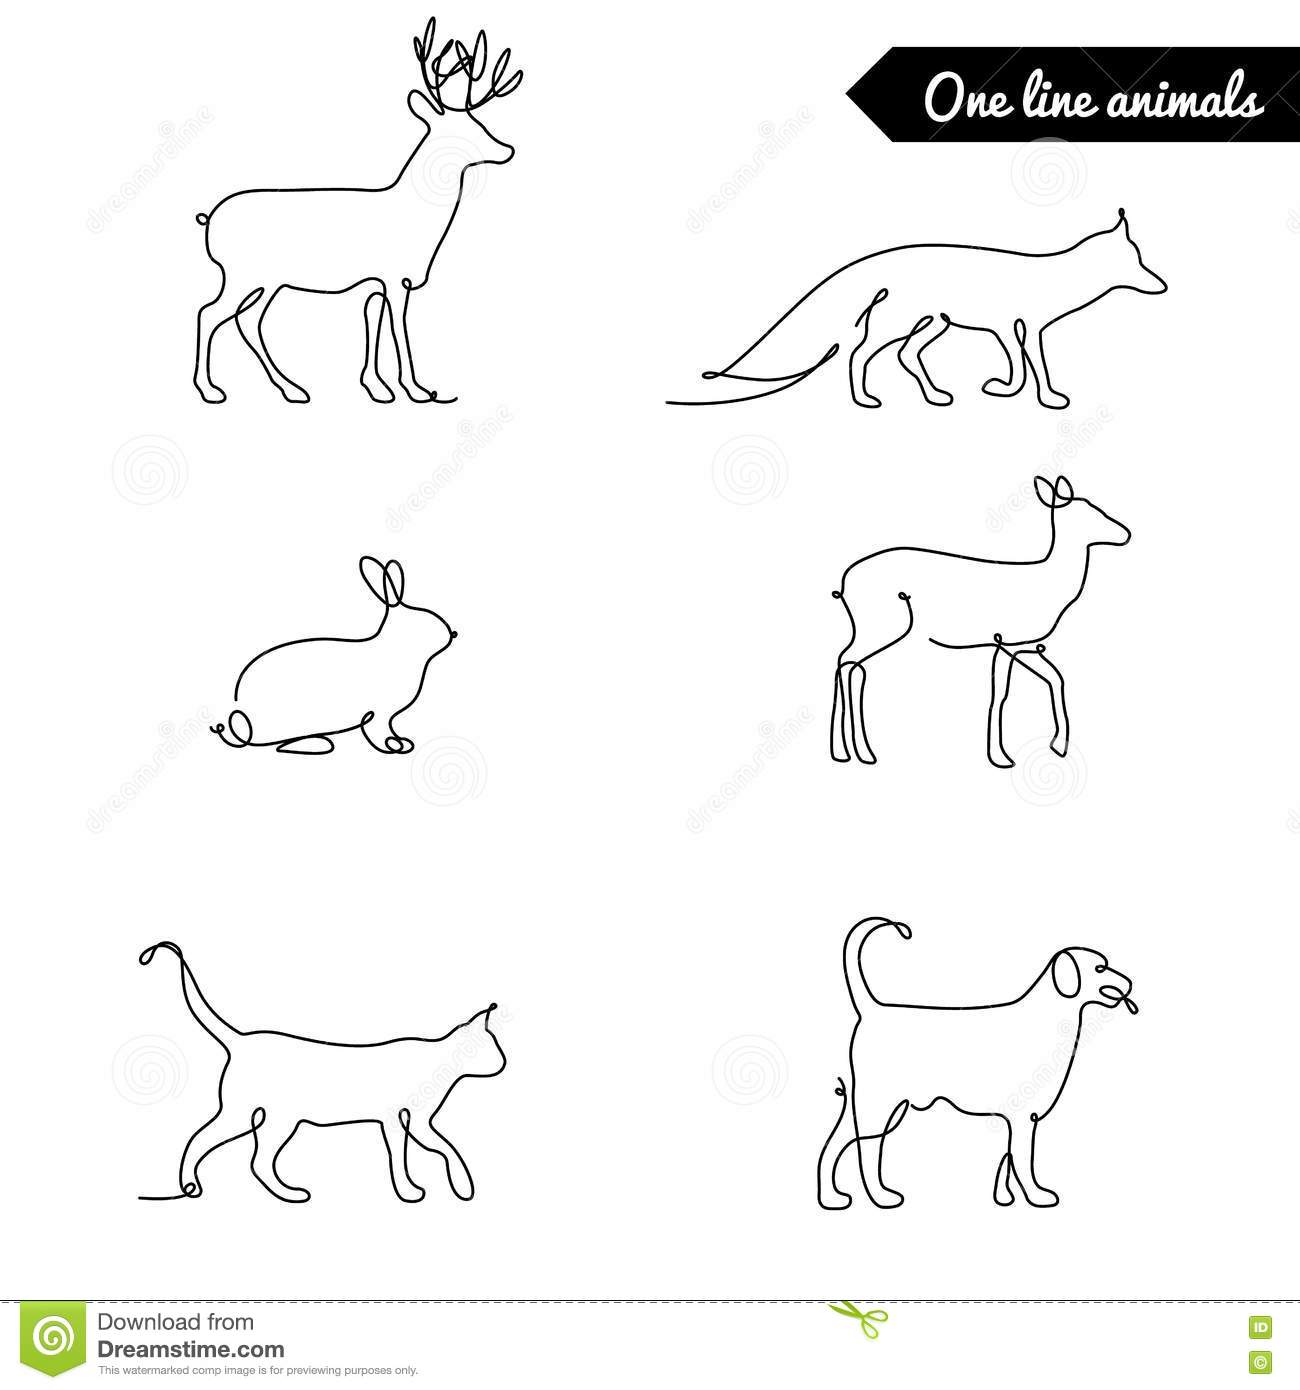 Single Line Drawings Of Animals : One line animals set logos vector stock illustration with